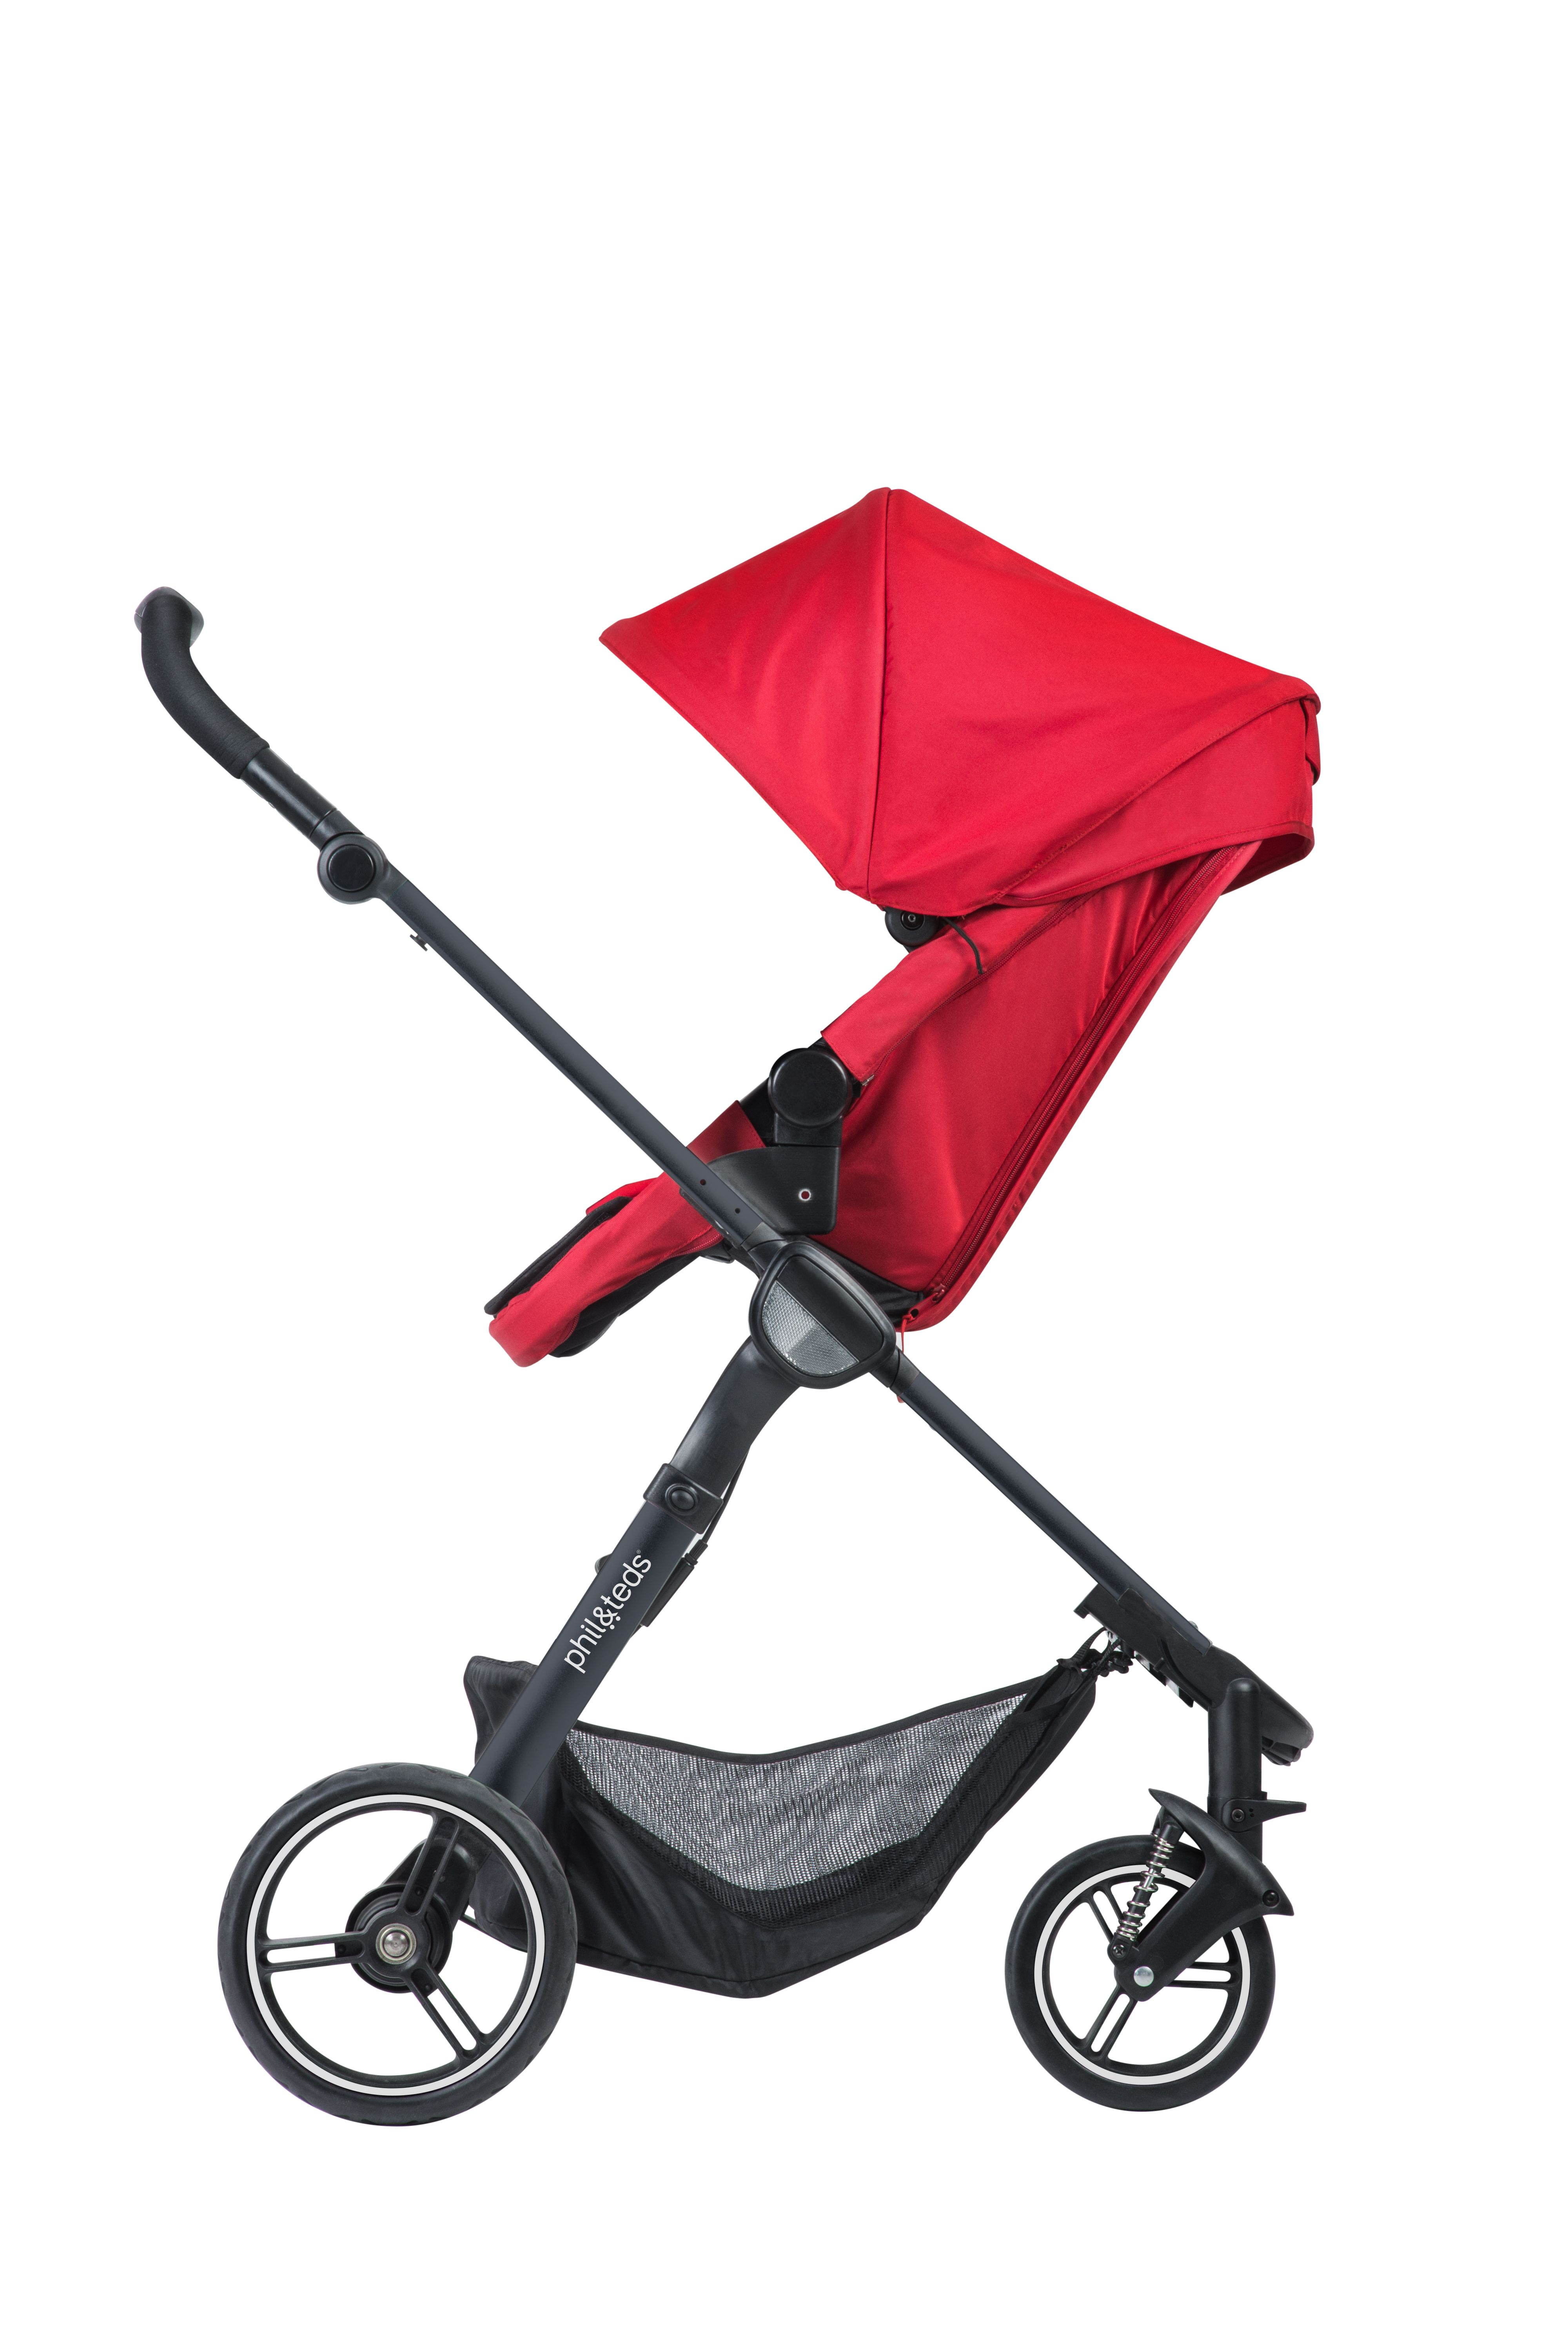 phil&teds smart lux stroller is compact & complete. as a luxury single pram smart lux seat is adaptable, changing from parent facing to world facing. everything you need to get through your parenting day in the city is here in the smart lux stroller. it's newborn ready too!